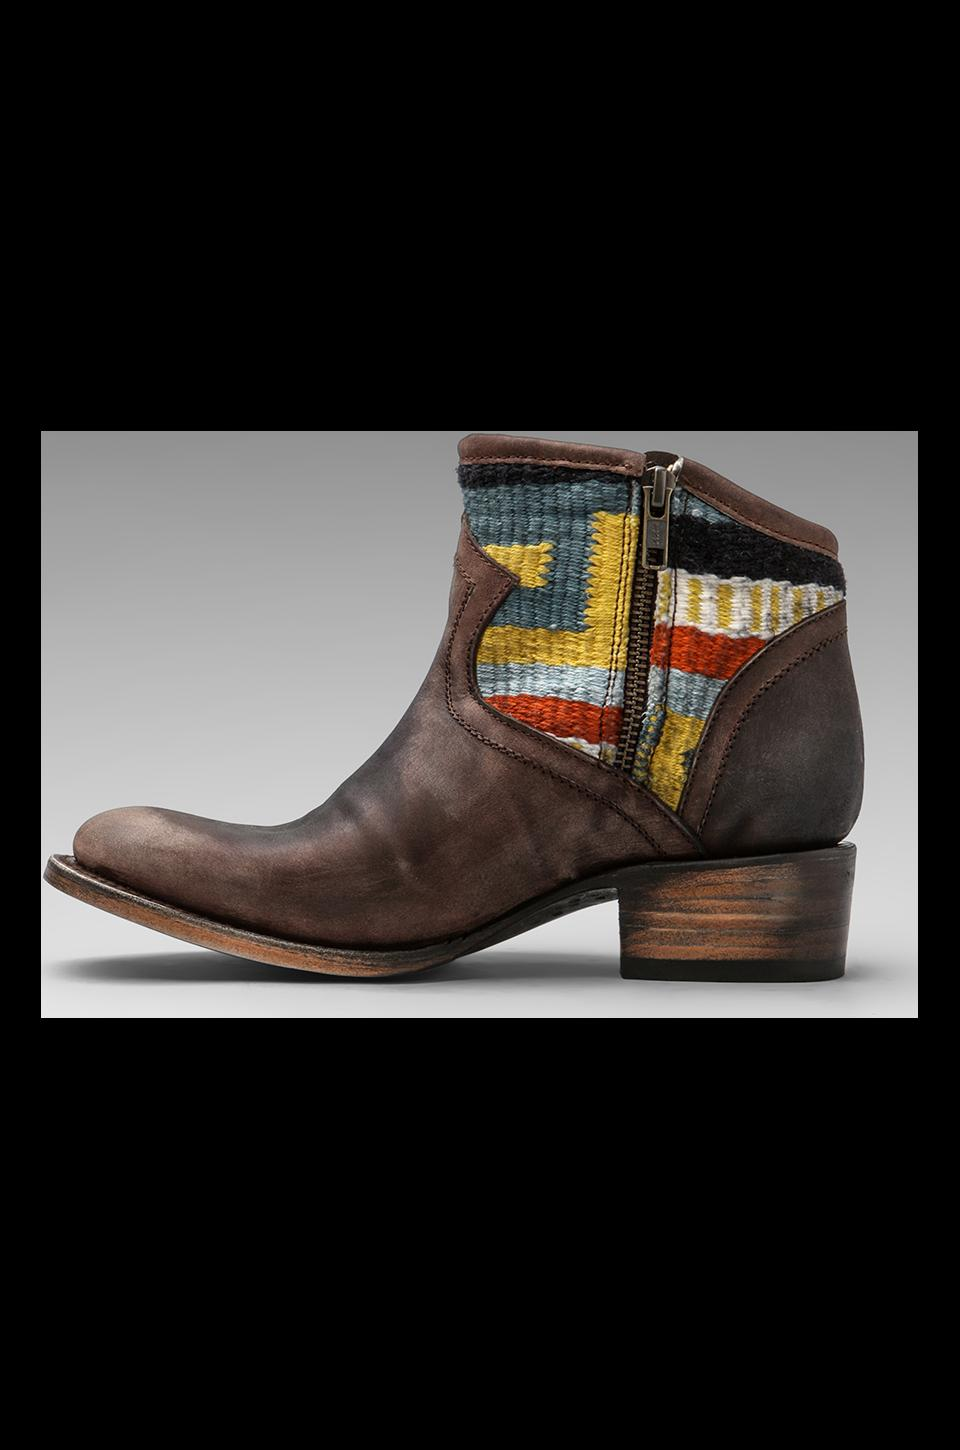 Steven Kano Bootie in Brown